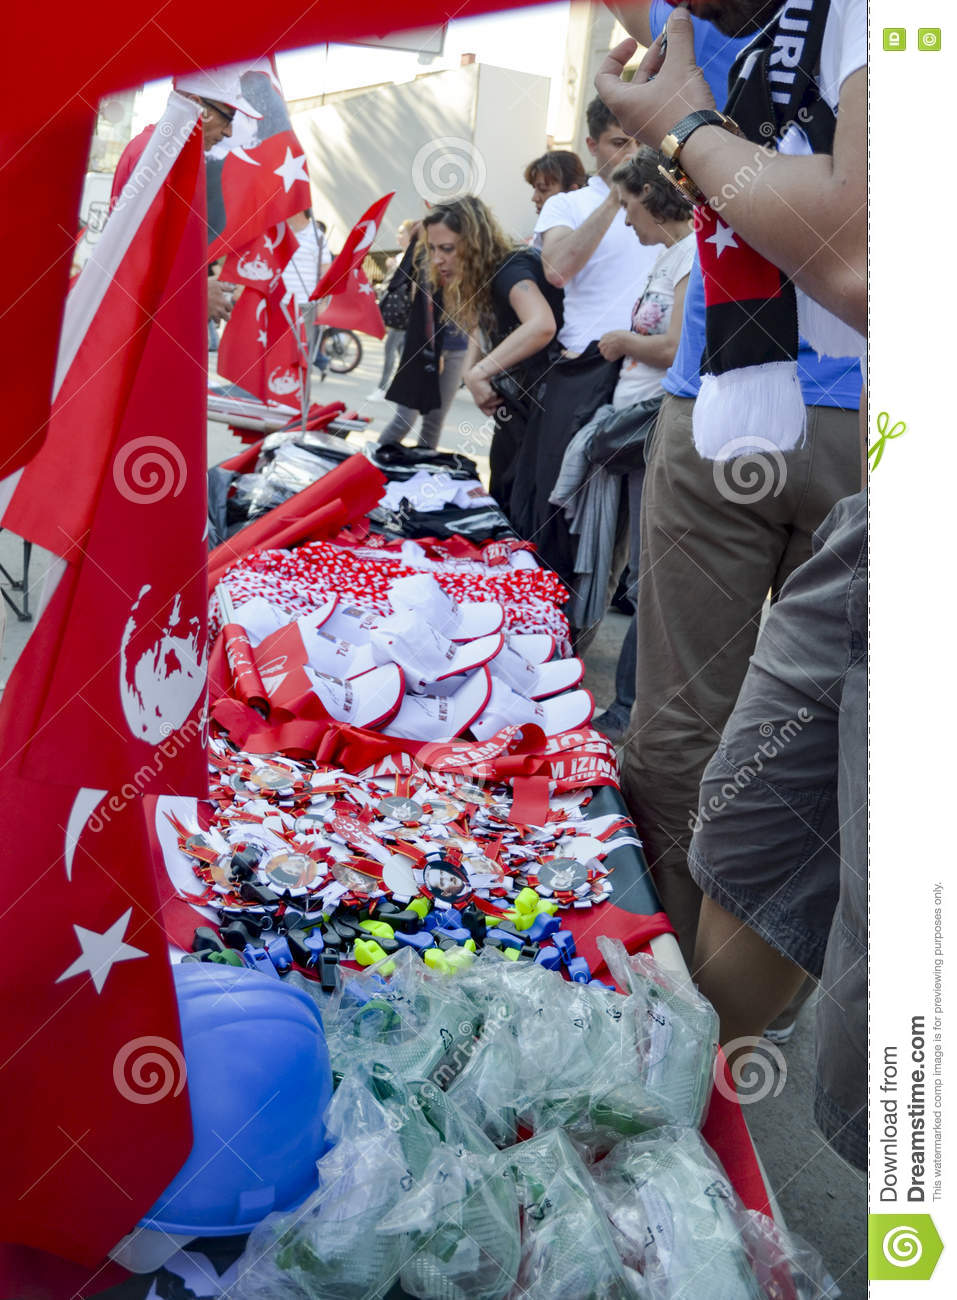 Taksim Gezi Park protests and Events.Products sold in the protest area, Helmet, Whistle, badges, flags, hats, gas masks.